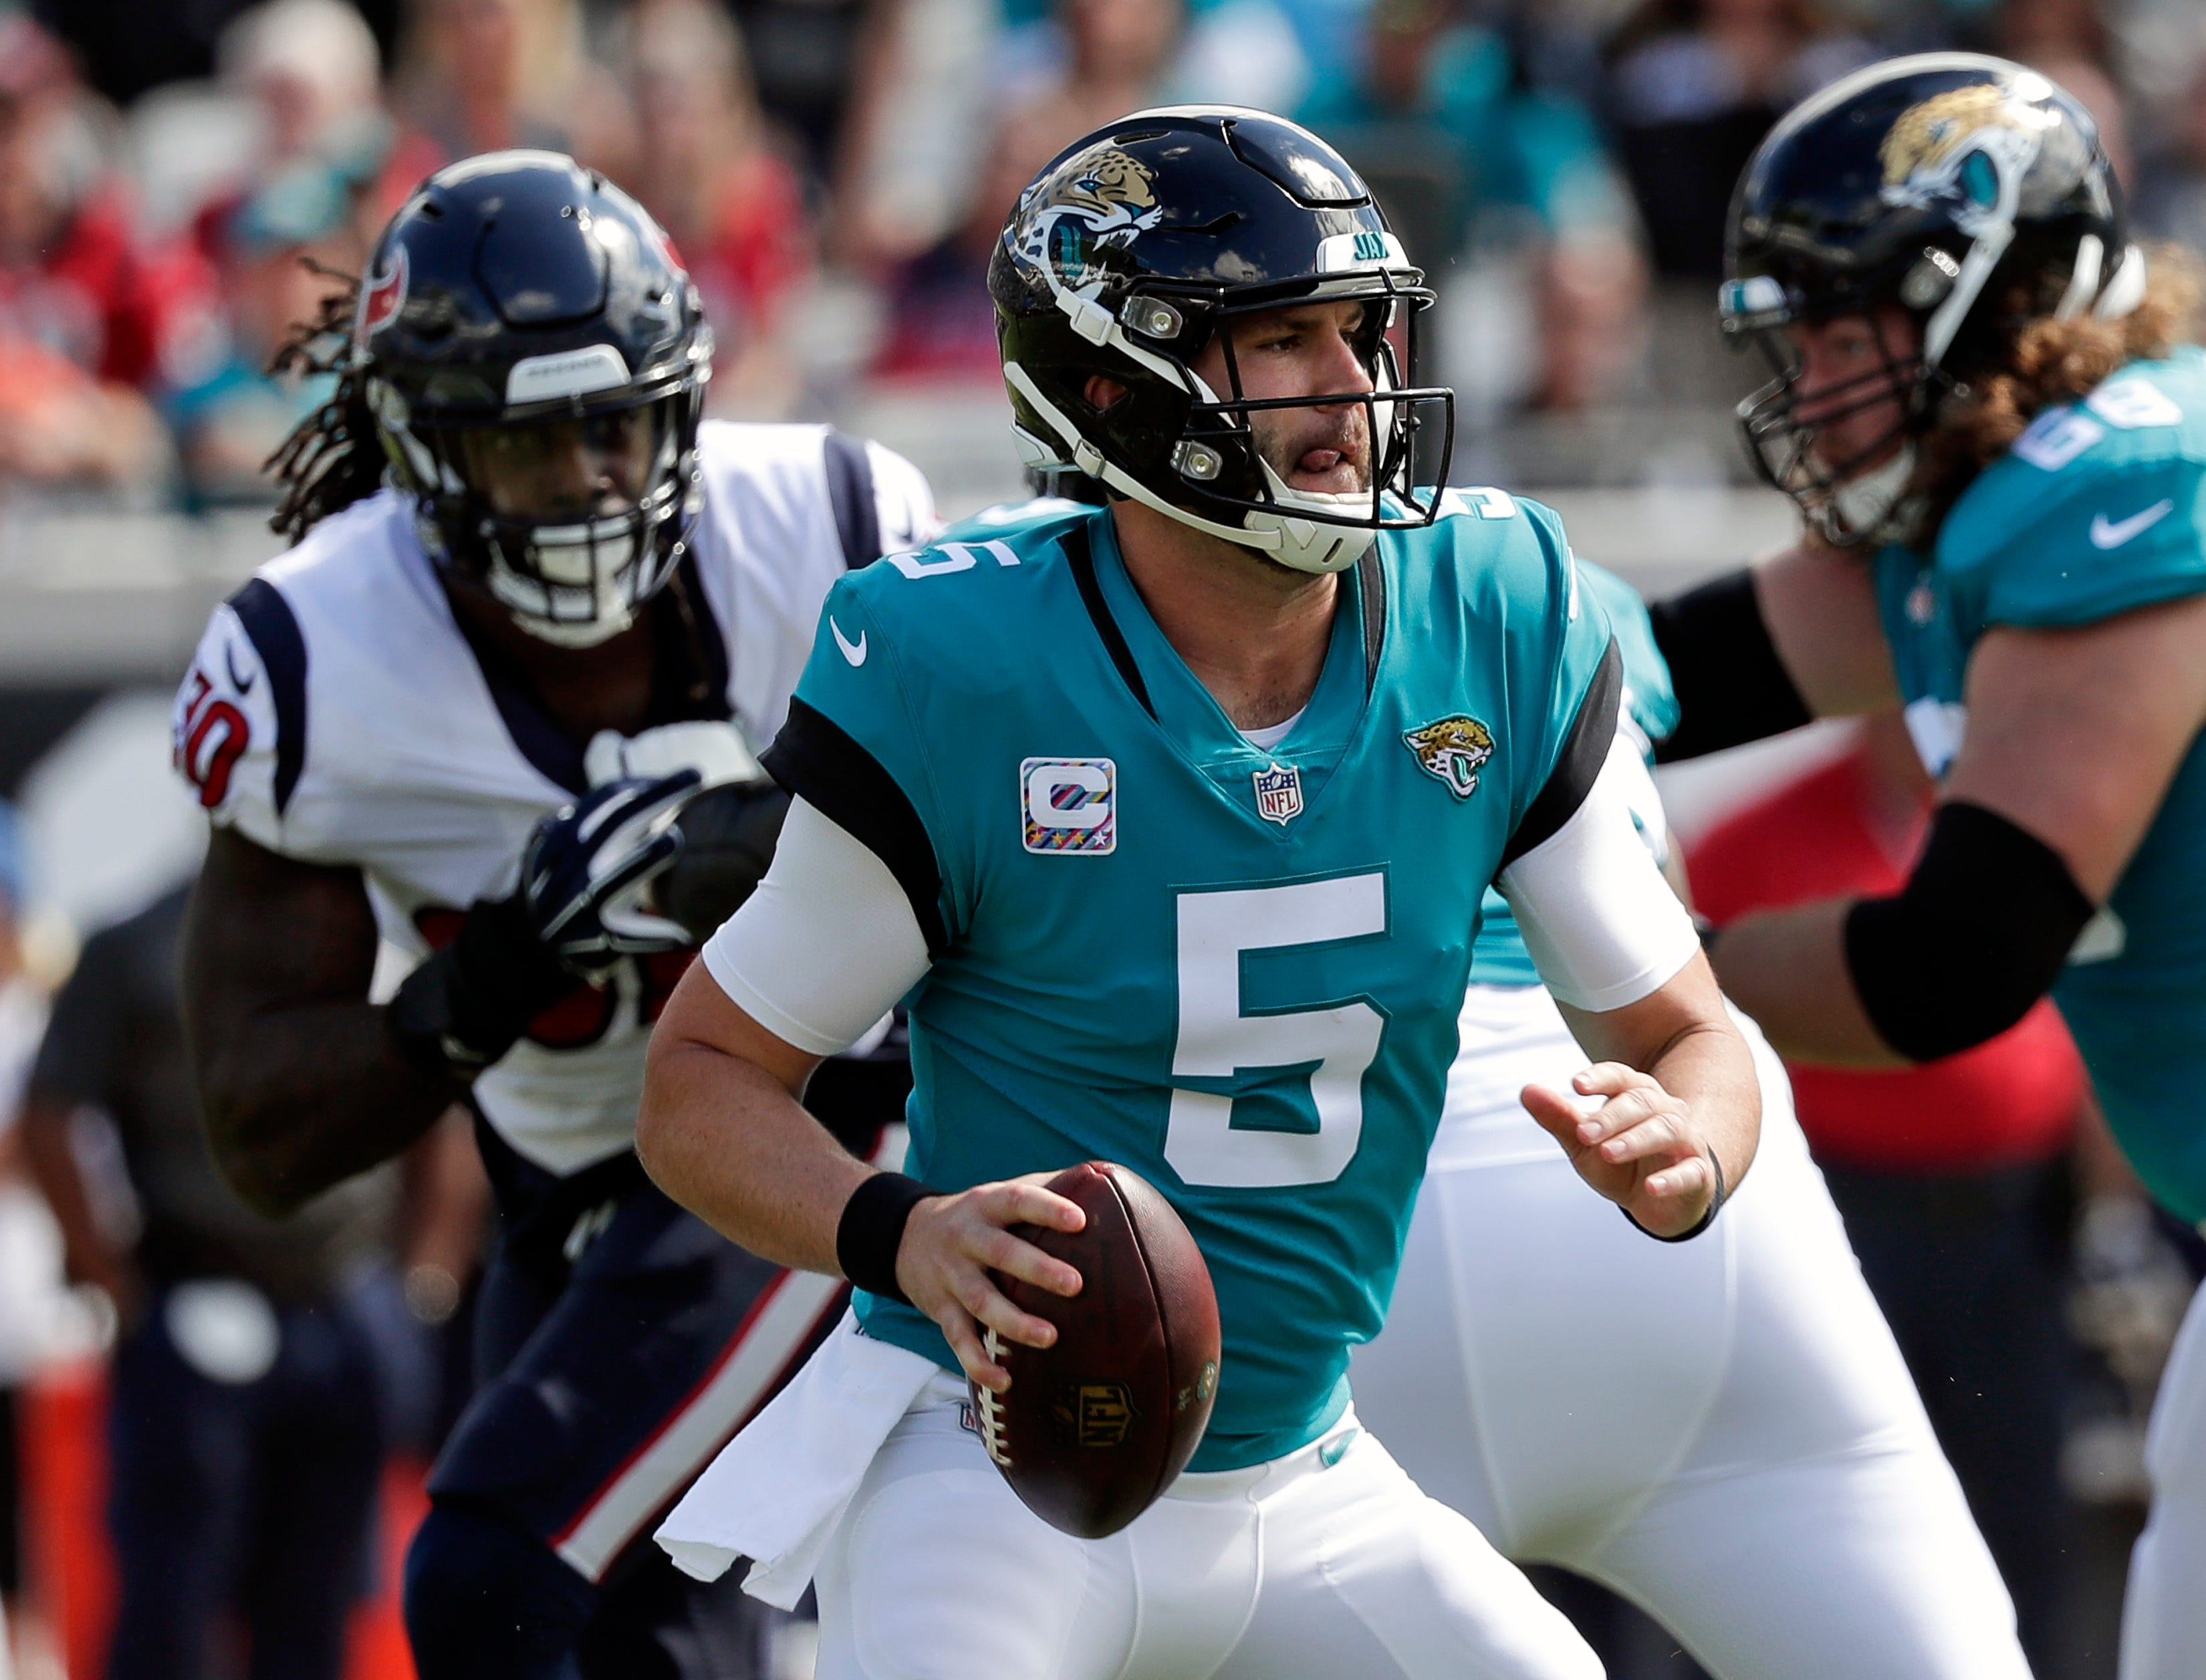 6a27b8bcb69 ... Jaguars sticking with Blake Bortles as starting QB USA TODAY - 16 31 PM  ET October 22